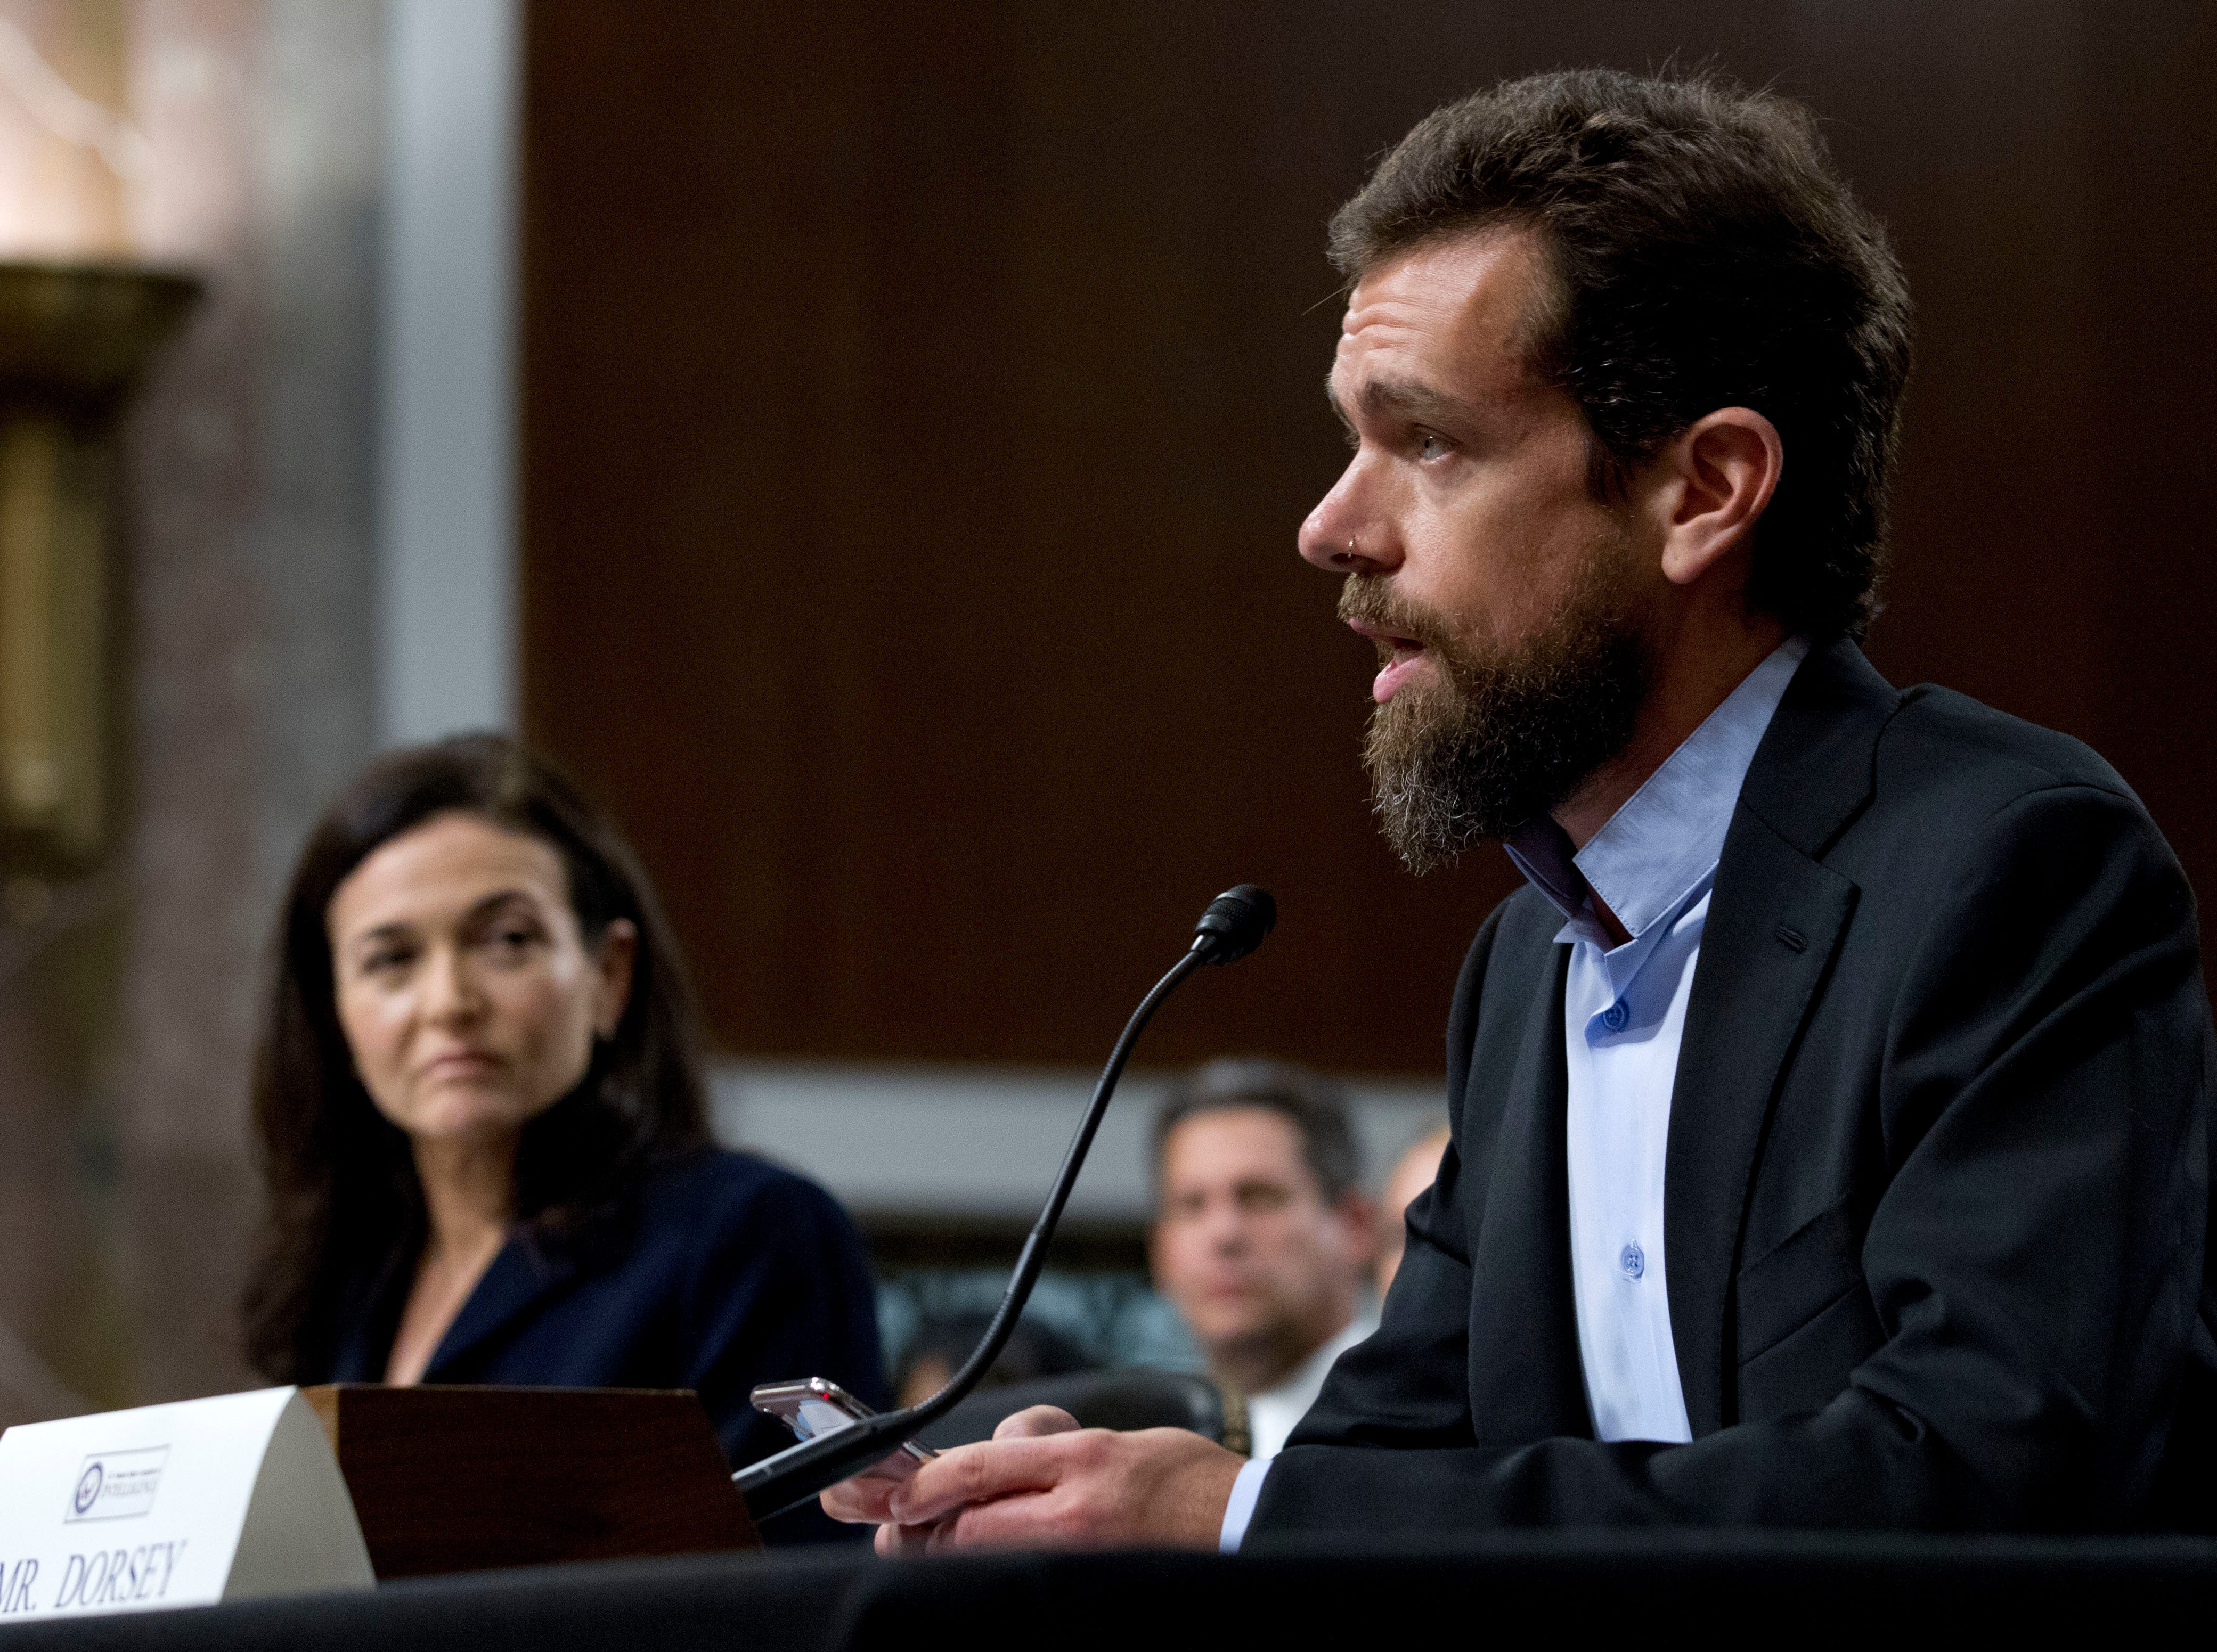 Twitter CEO Jack Dorsey, accompanied by Facebook COO Sheryl Sandberg, testify before the Senate Intelligence Committee hearing on 'Foreign Influence Operations and Their Use of Social Media Platforms' on Capitol Hill, Wednesday, Sept. 5, 2018, in Washington. (AP Photo/Jose Luis Magana) ORG XMIT: DCJL110